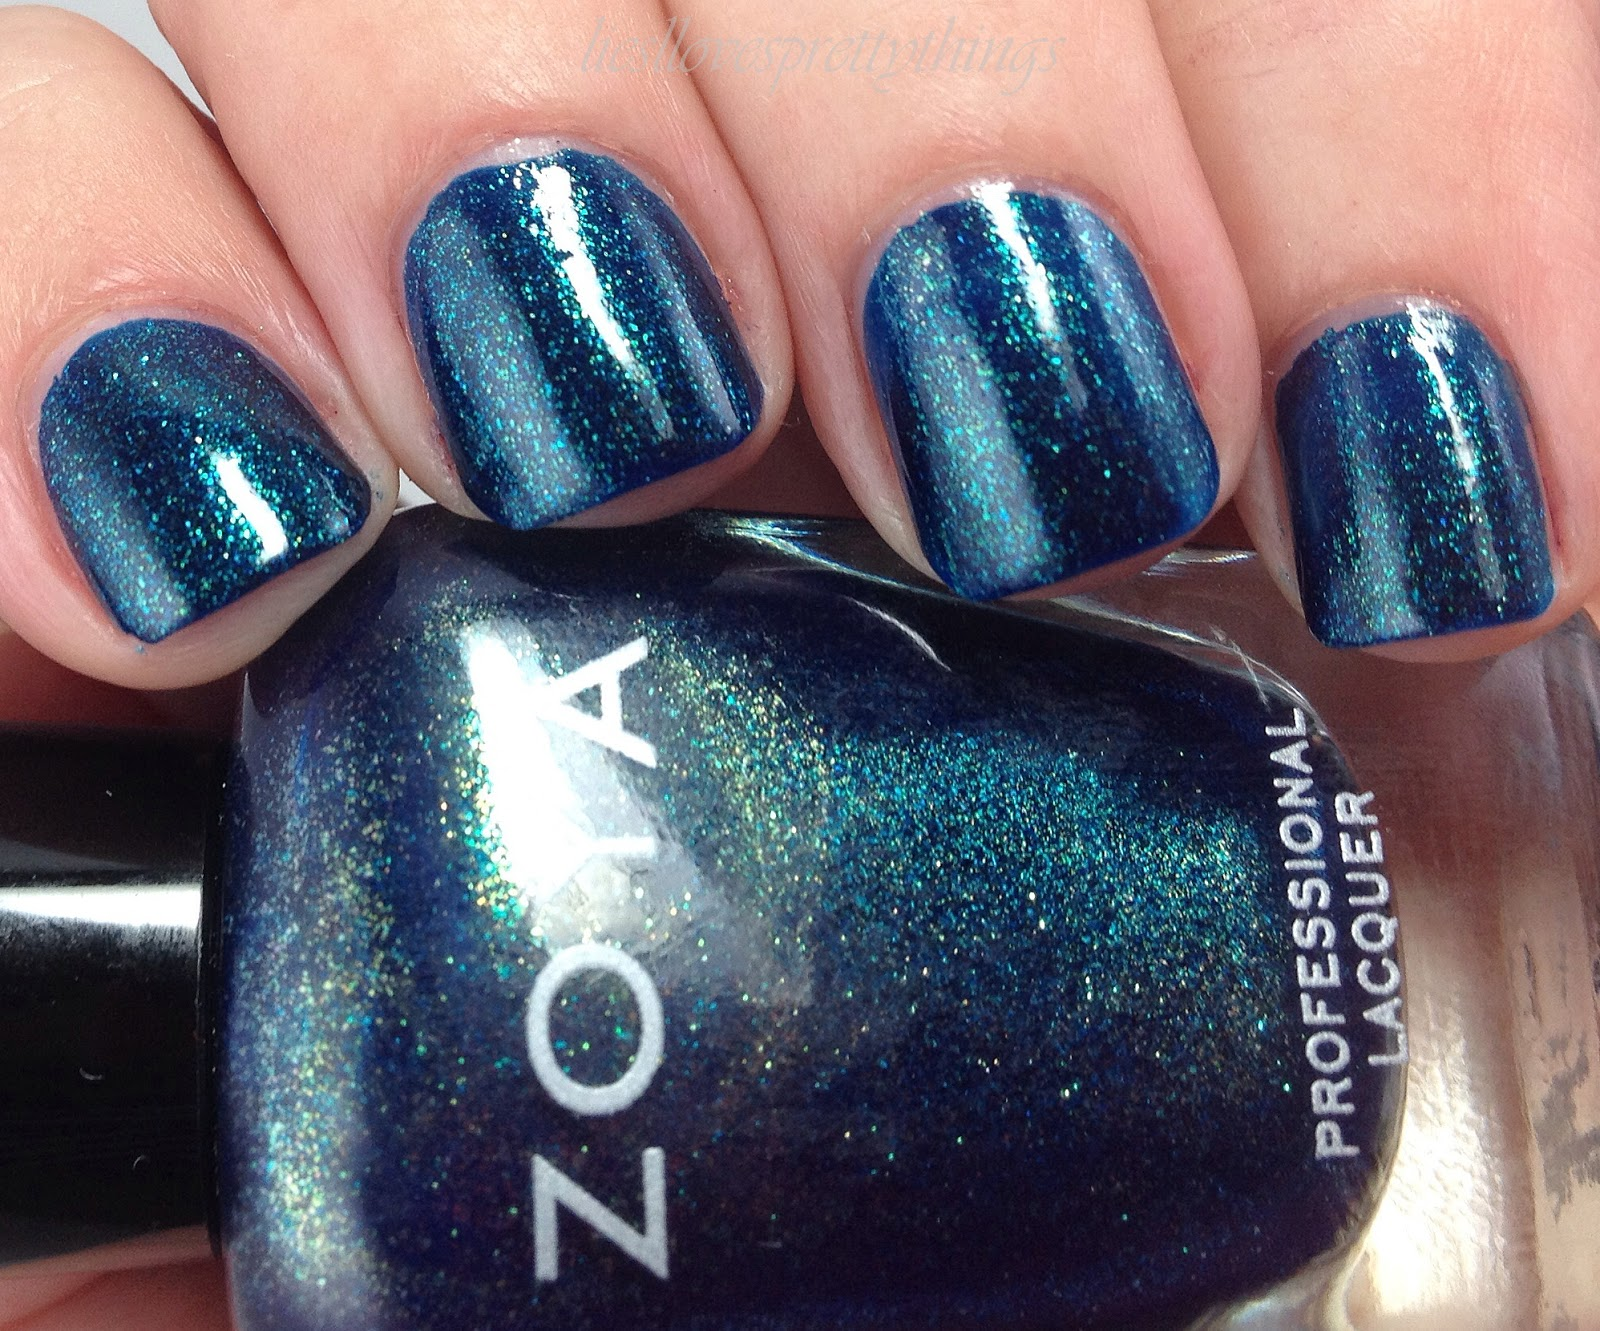 Zoya Remy swatch and review